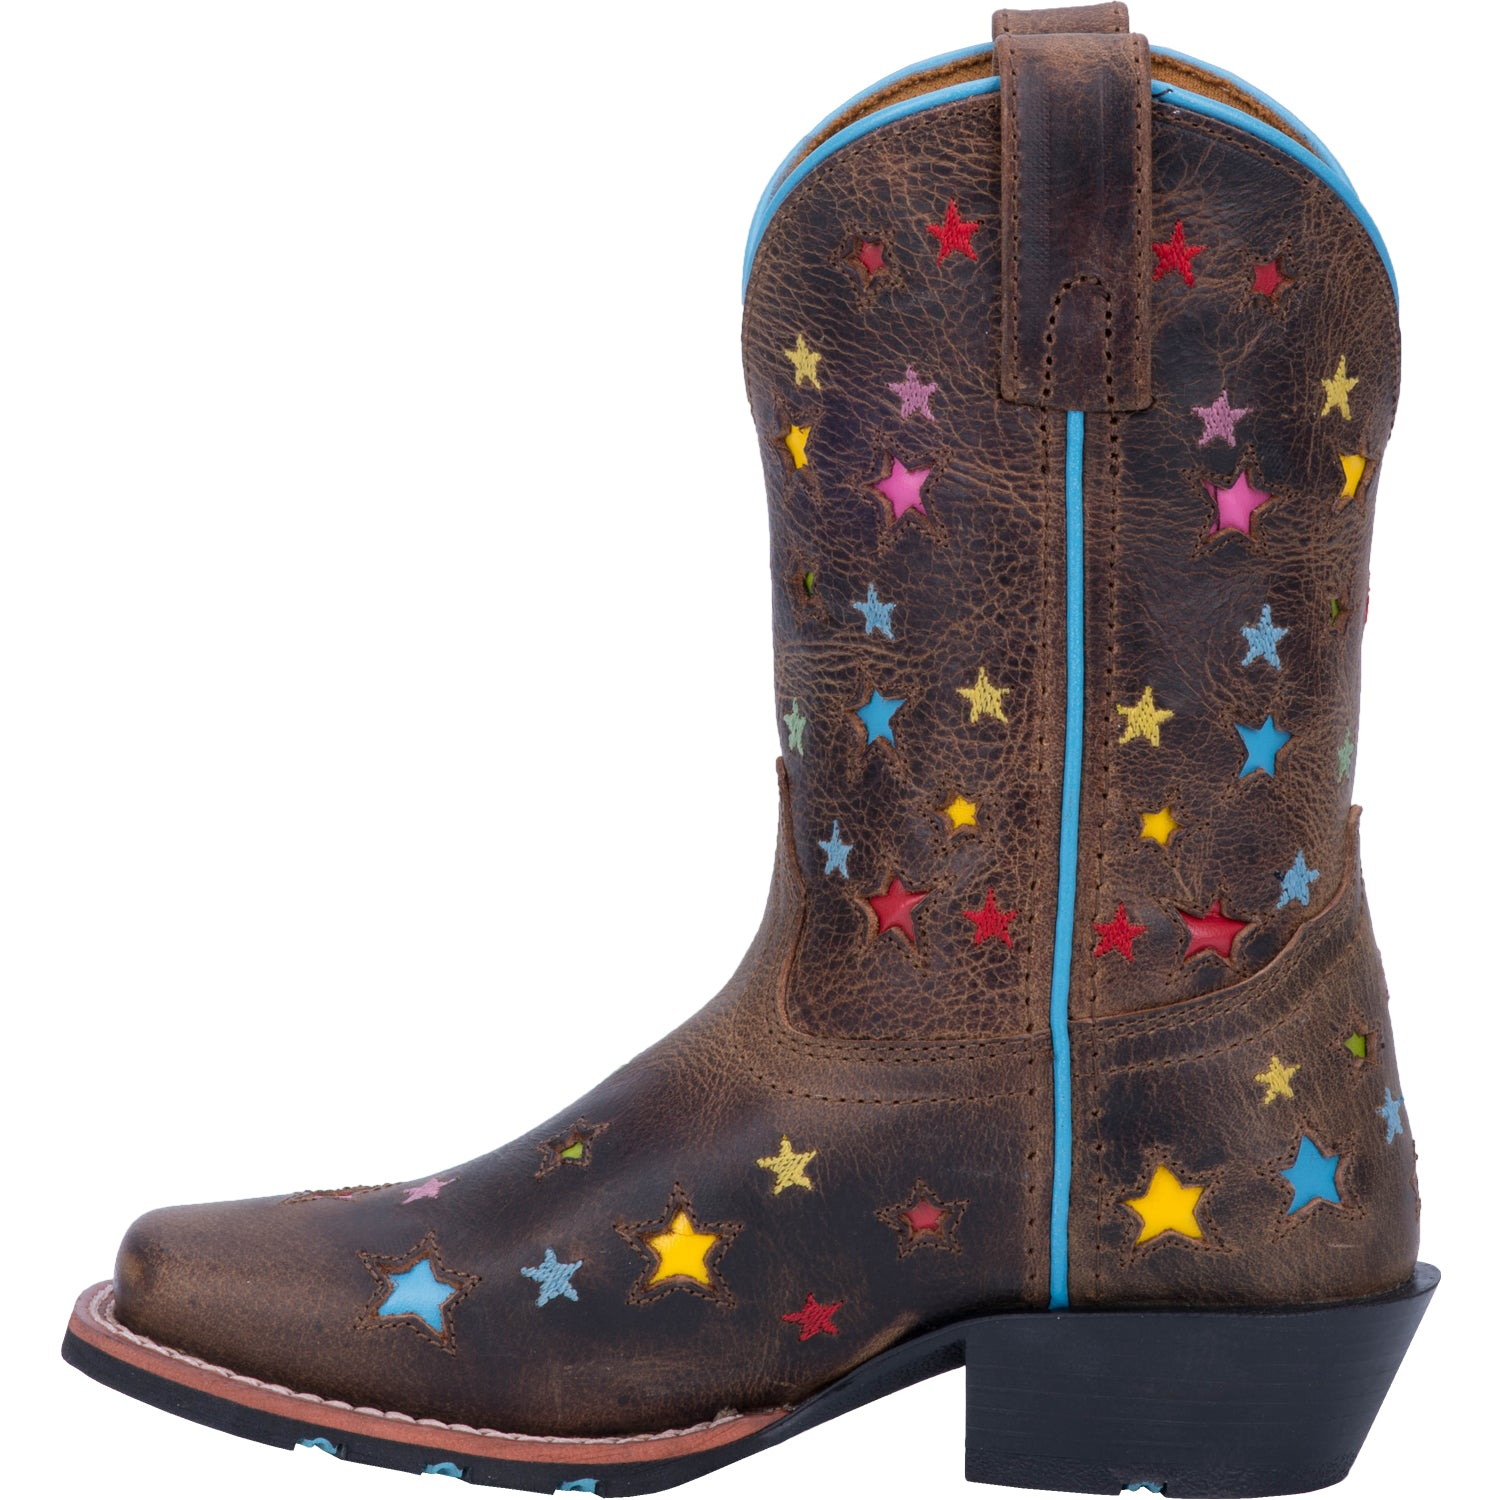 STARLETT LEATHER YOUTH BOOT 15521816805418